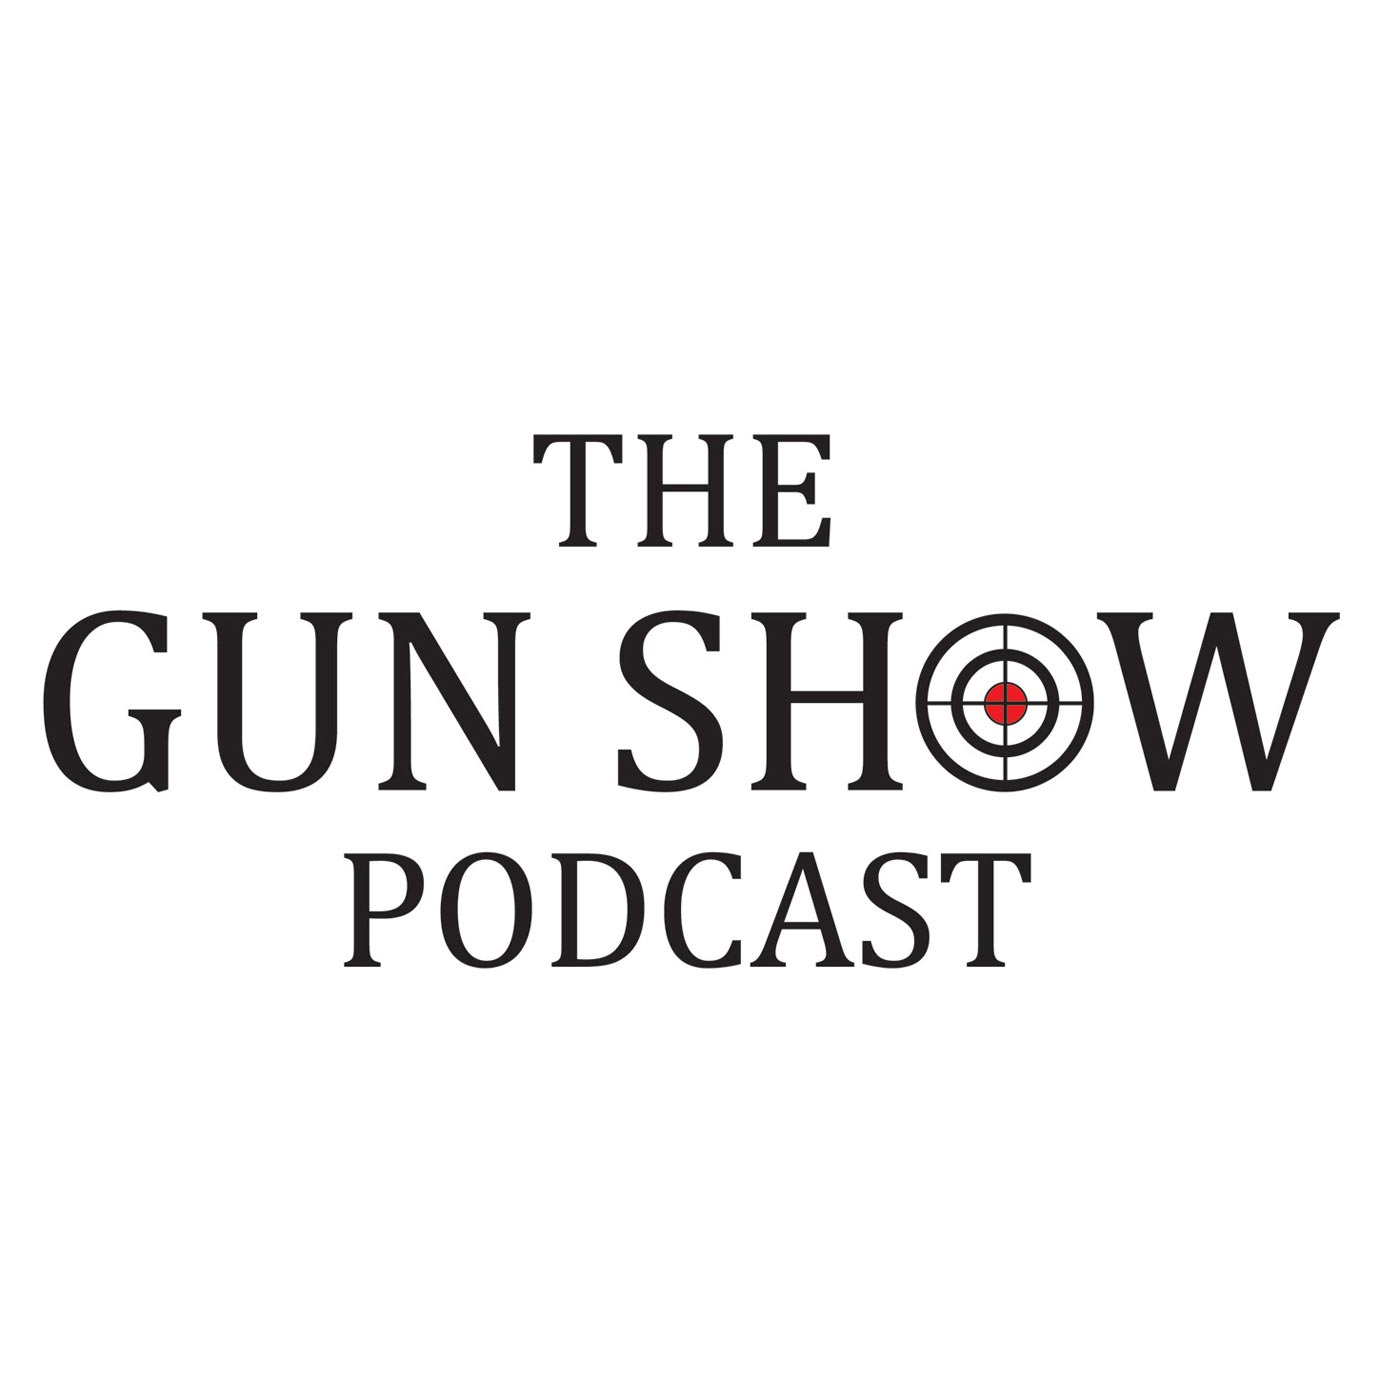 The Gun Show Podcast